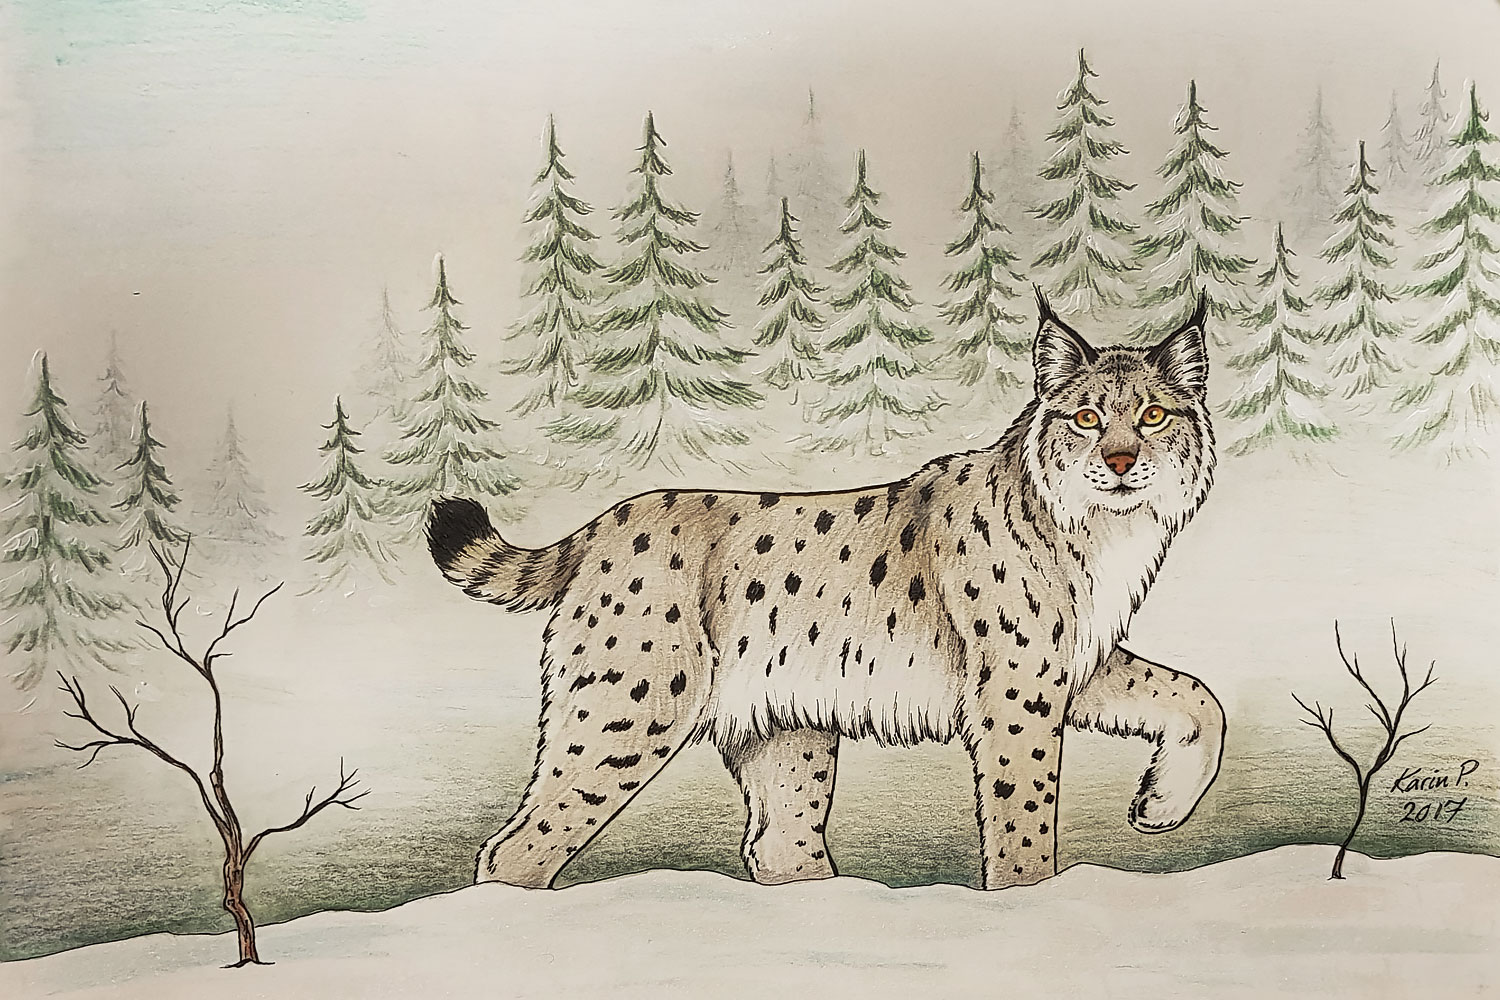 Drawing of lynx in winter landscape